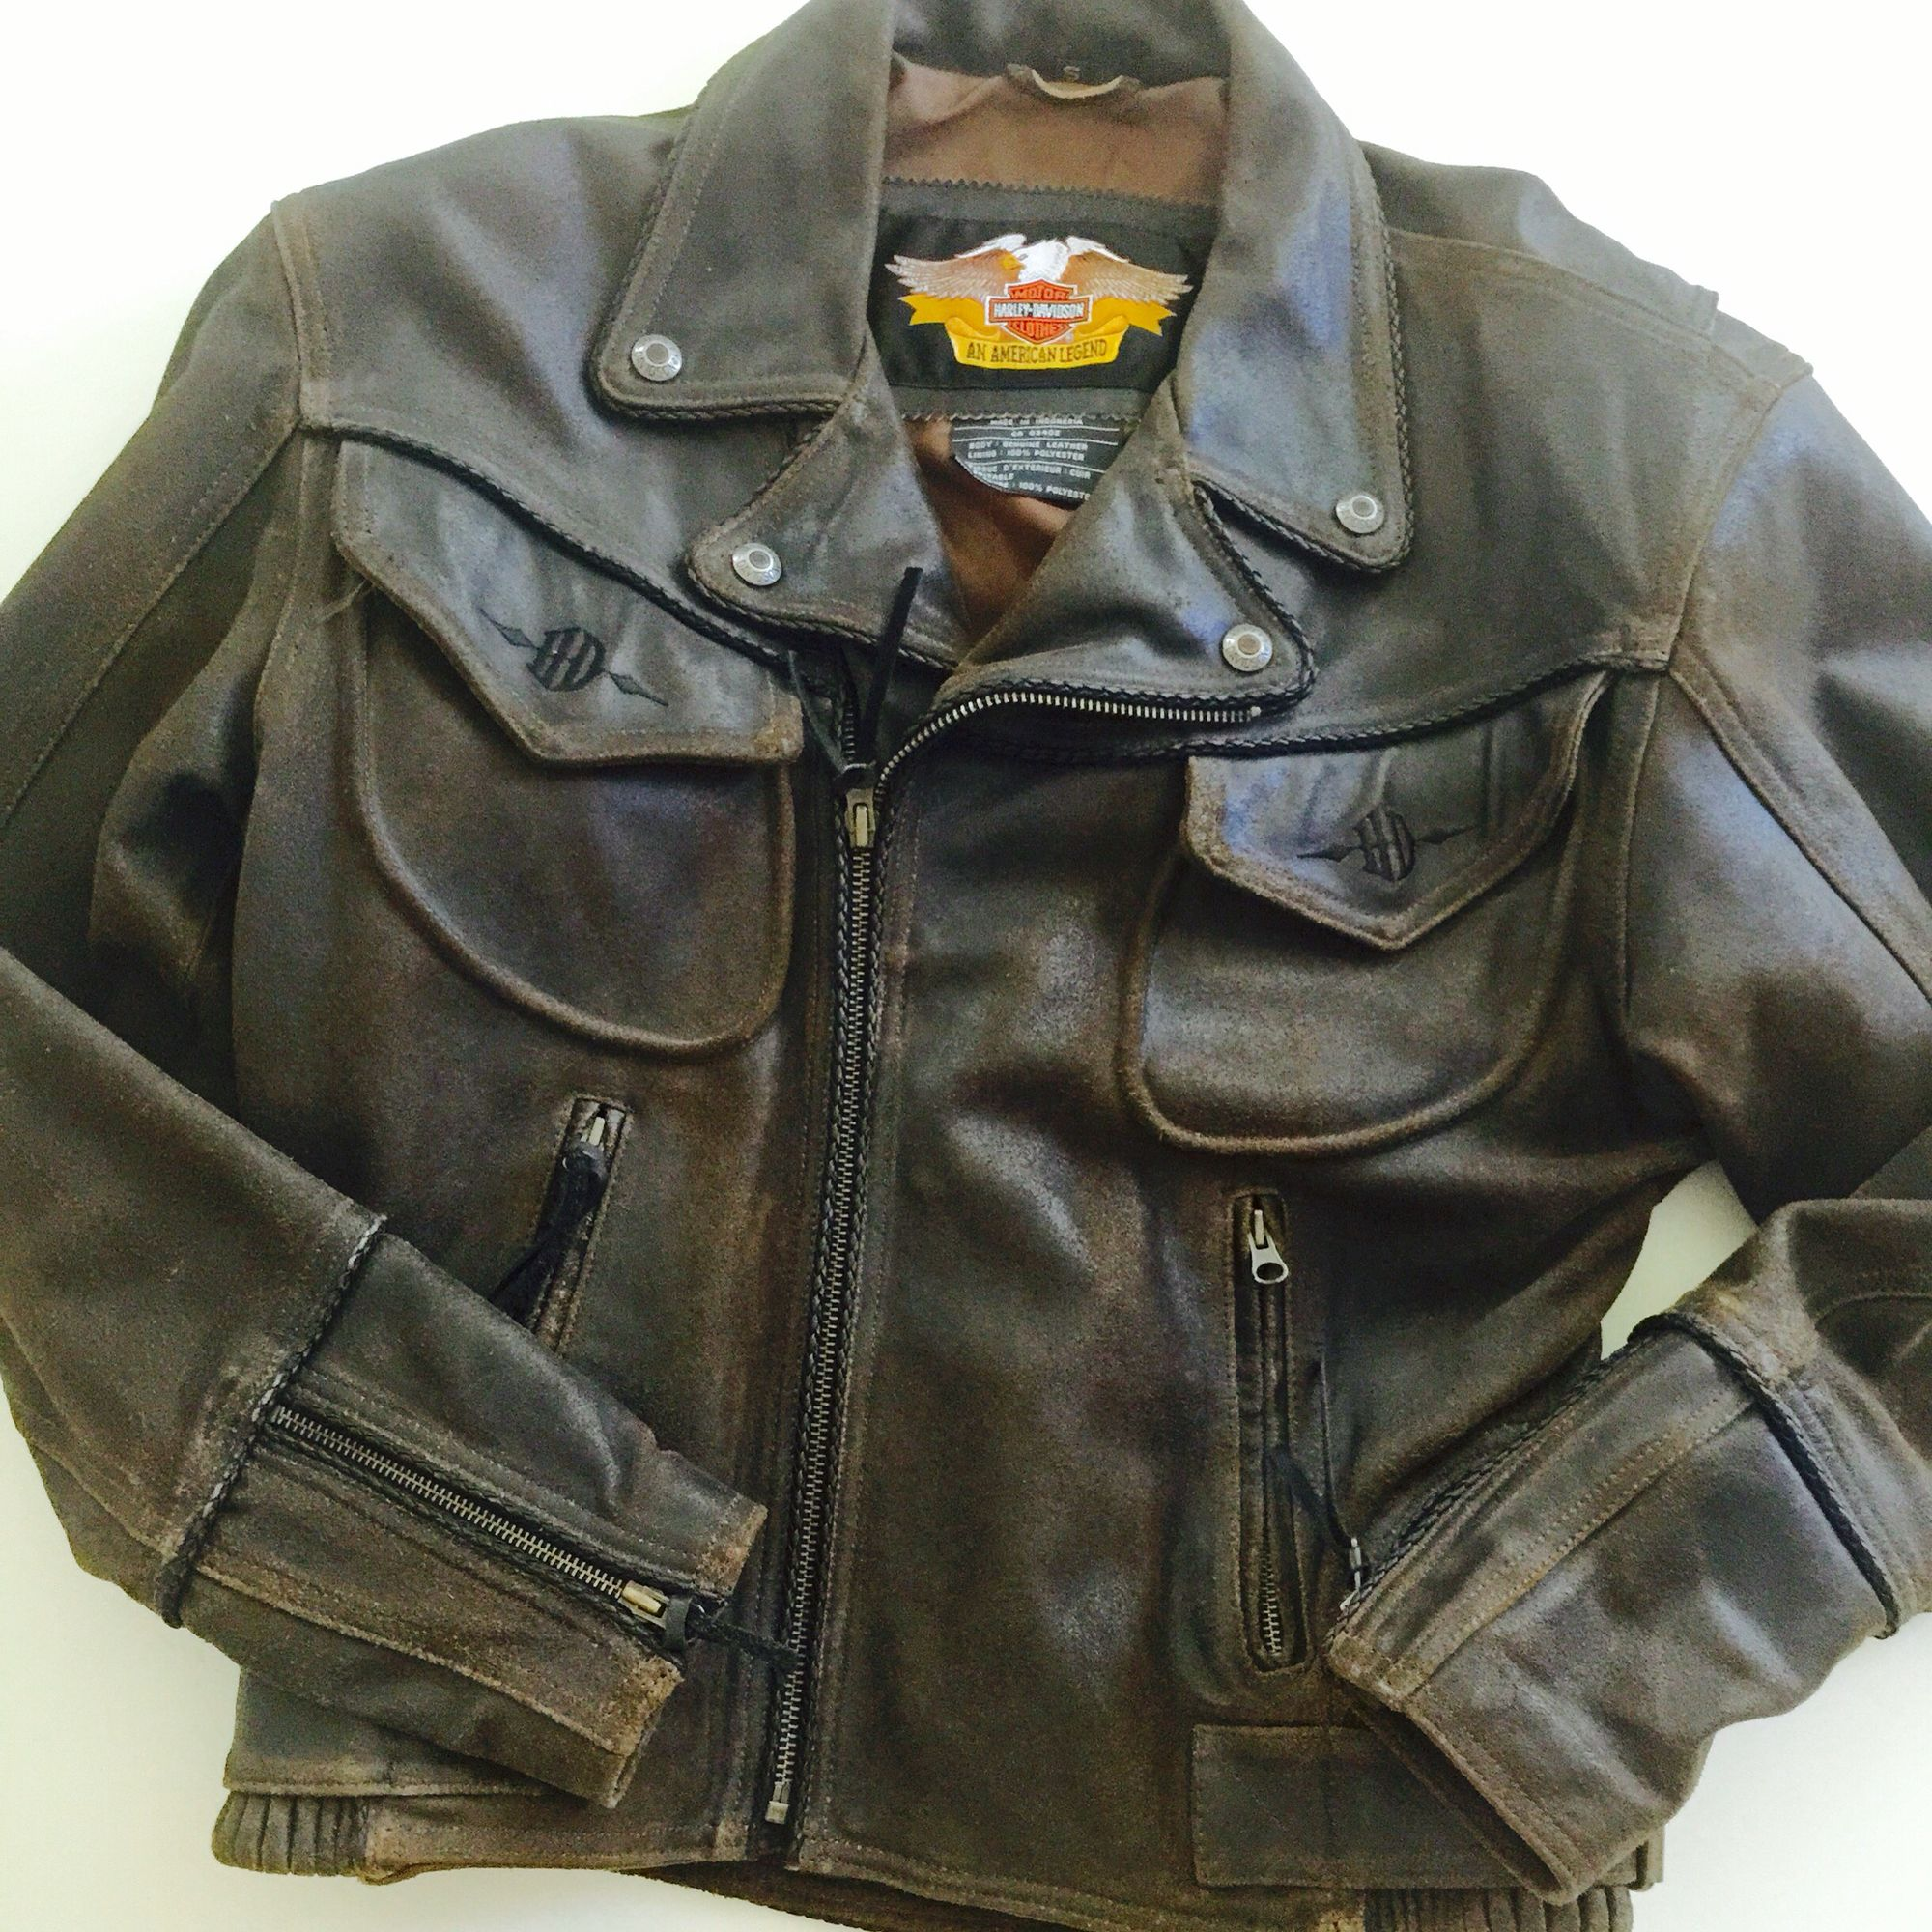 Vintage HarleyDavidson Billings Leather Jacket. See